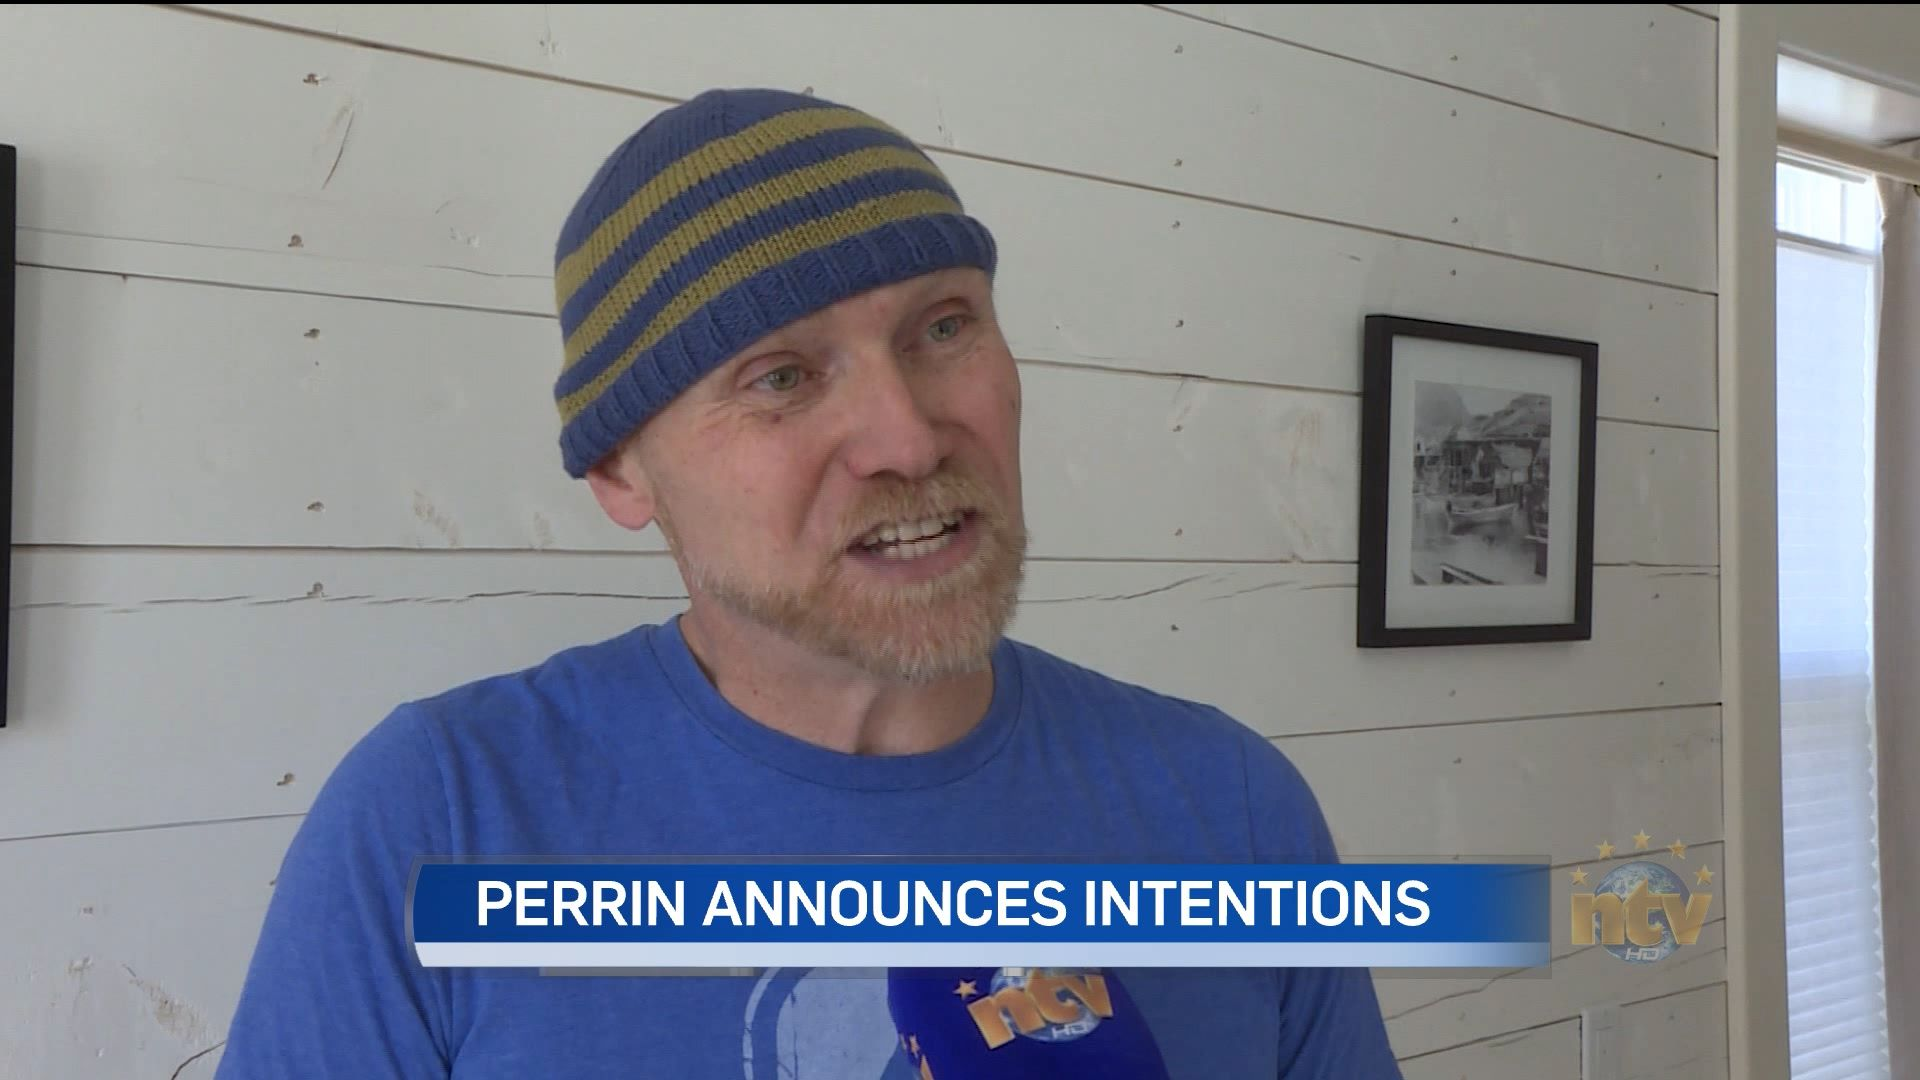 Todd Perrin running for PC nomination in St. John's East